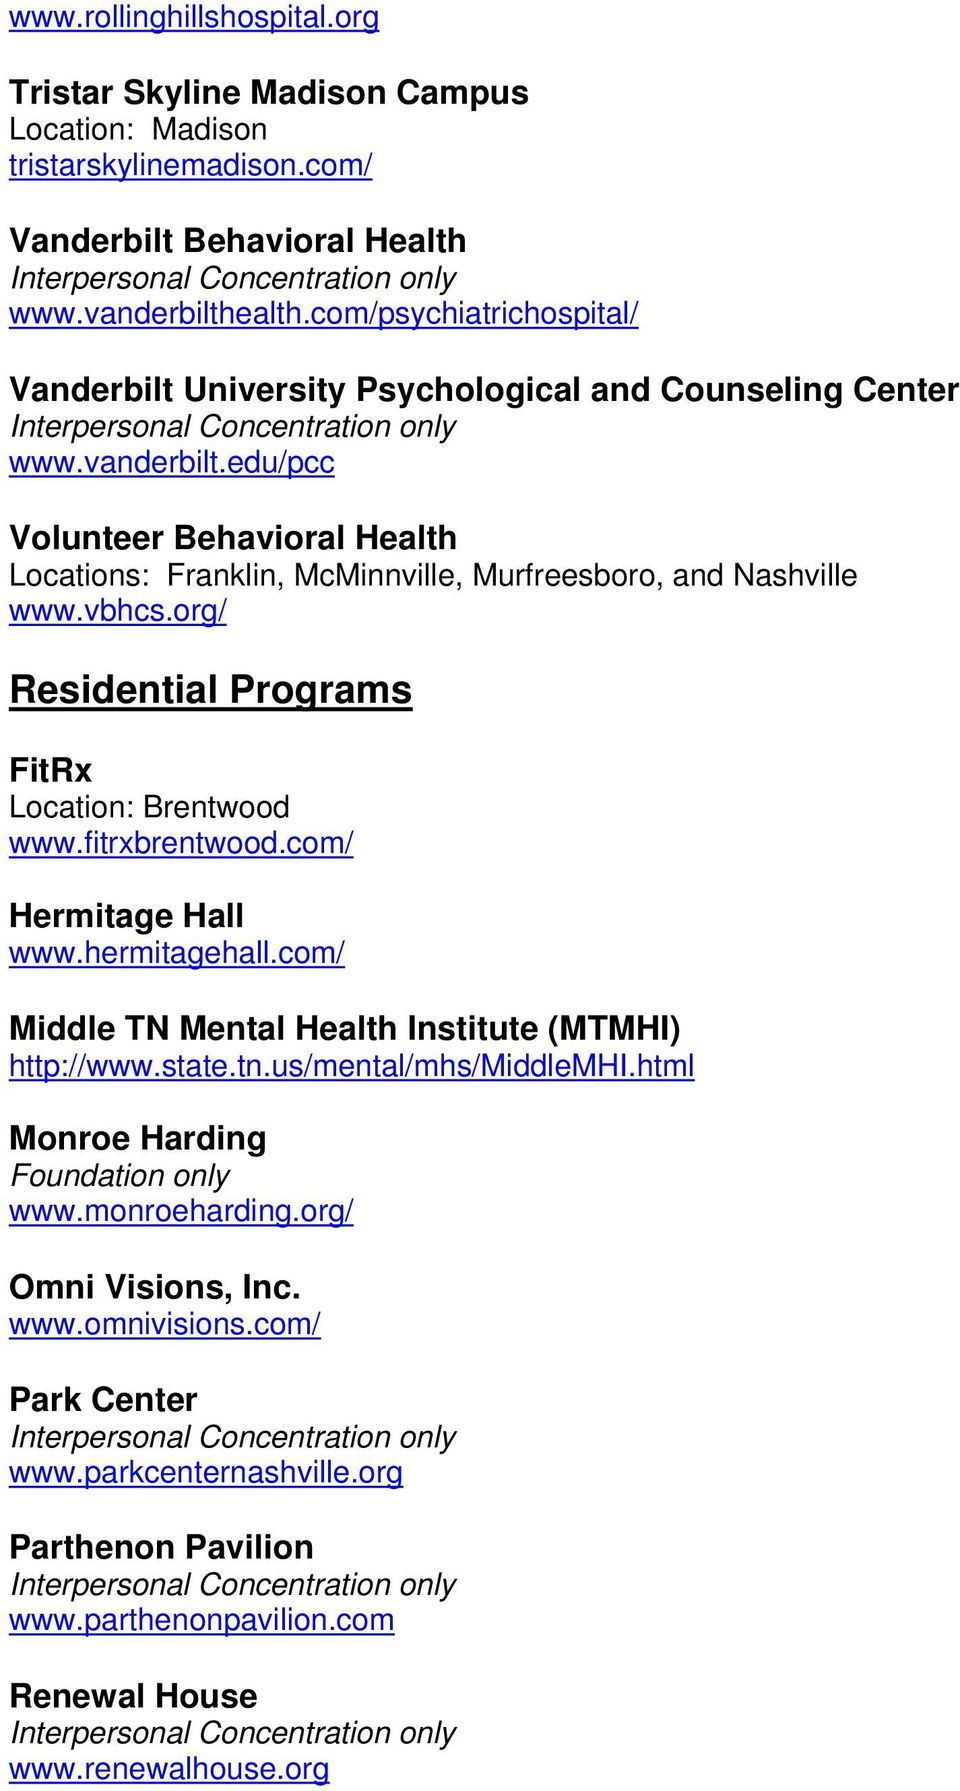 edu/pcc Volunteer Behavioral Health Locations: Franklin, McMinnville, Murfreesboro, and Nashville www.vbhcs.org/ Residential Programs FitRx Location: Brentwood www.fitrxbrentwood.